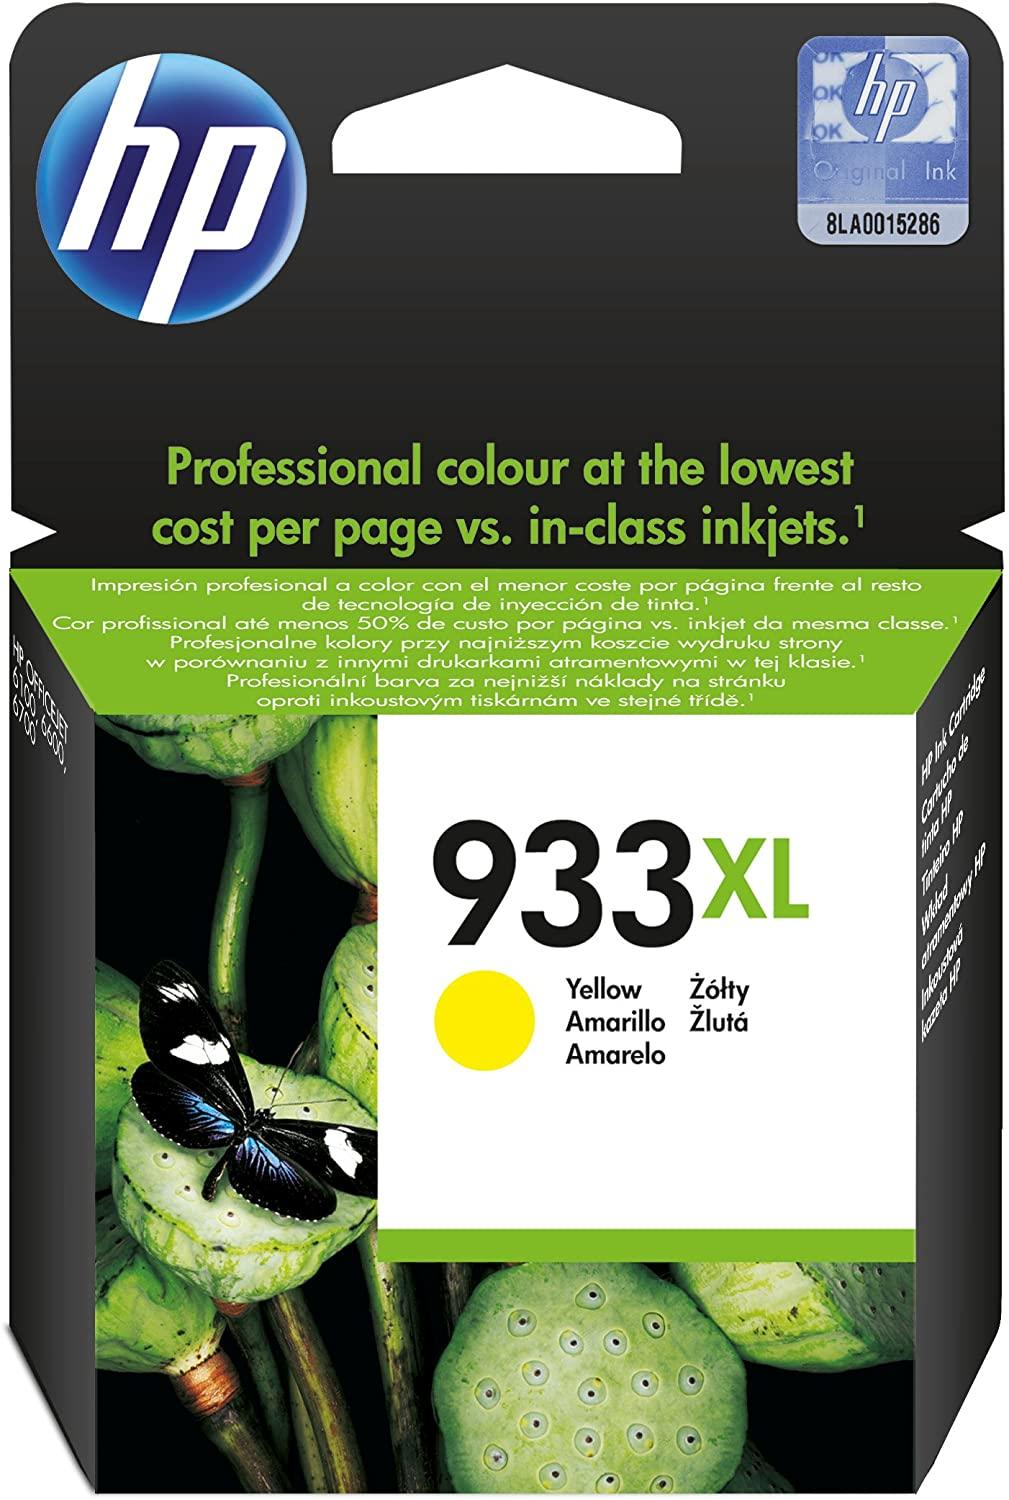 HP INK 933XL YELLOW